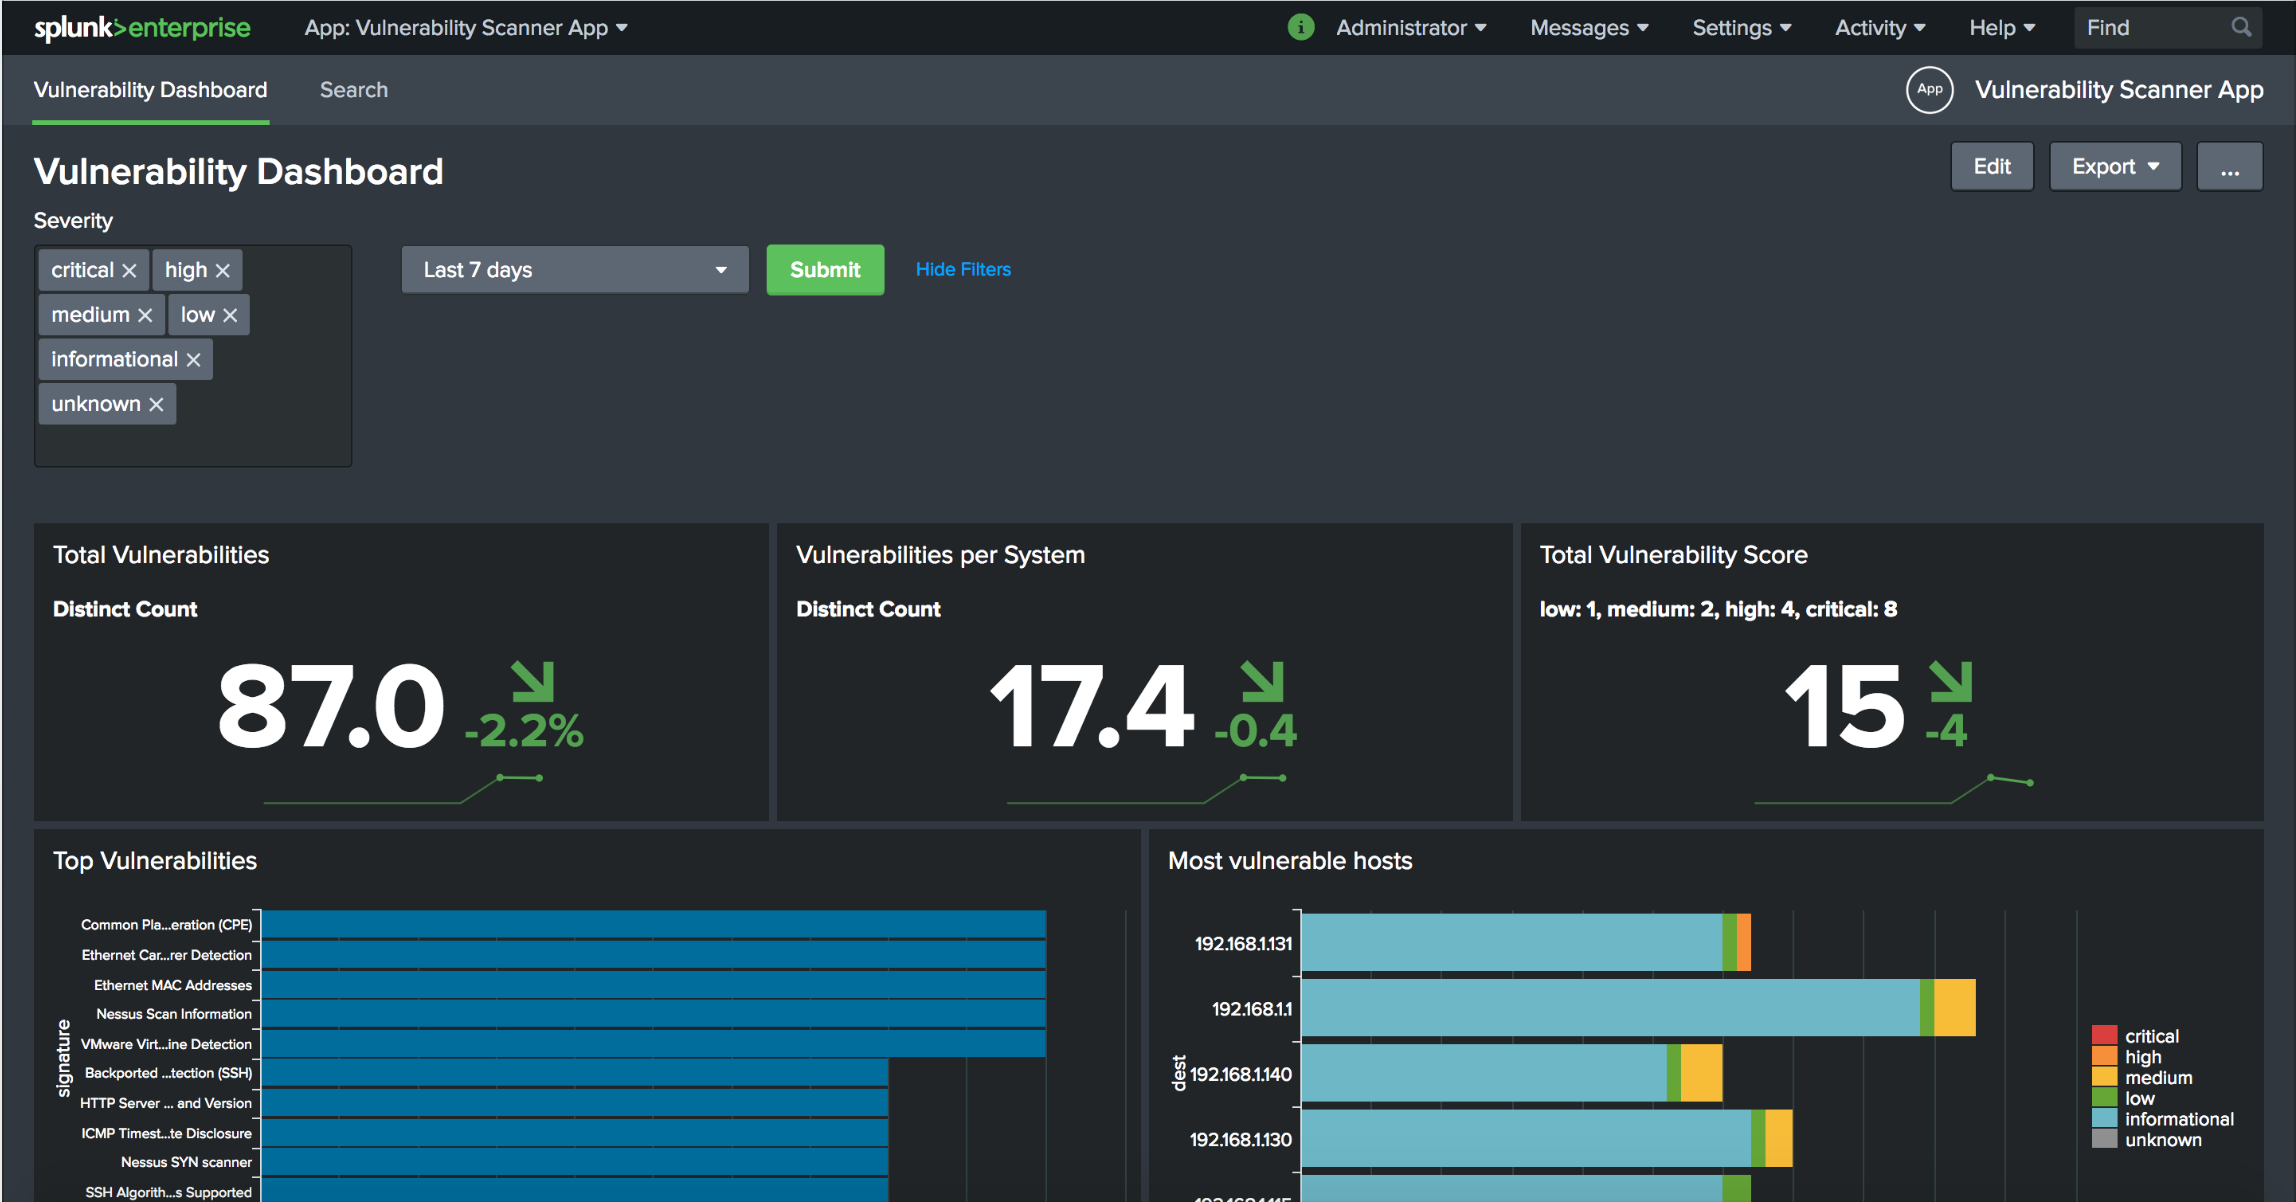 Integrating Nessus Vulnerability Scanner into Splunk